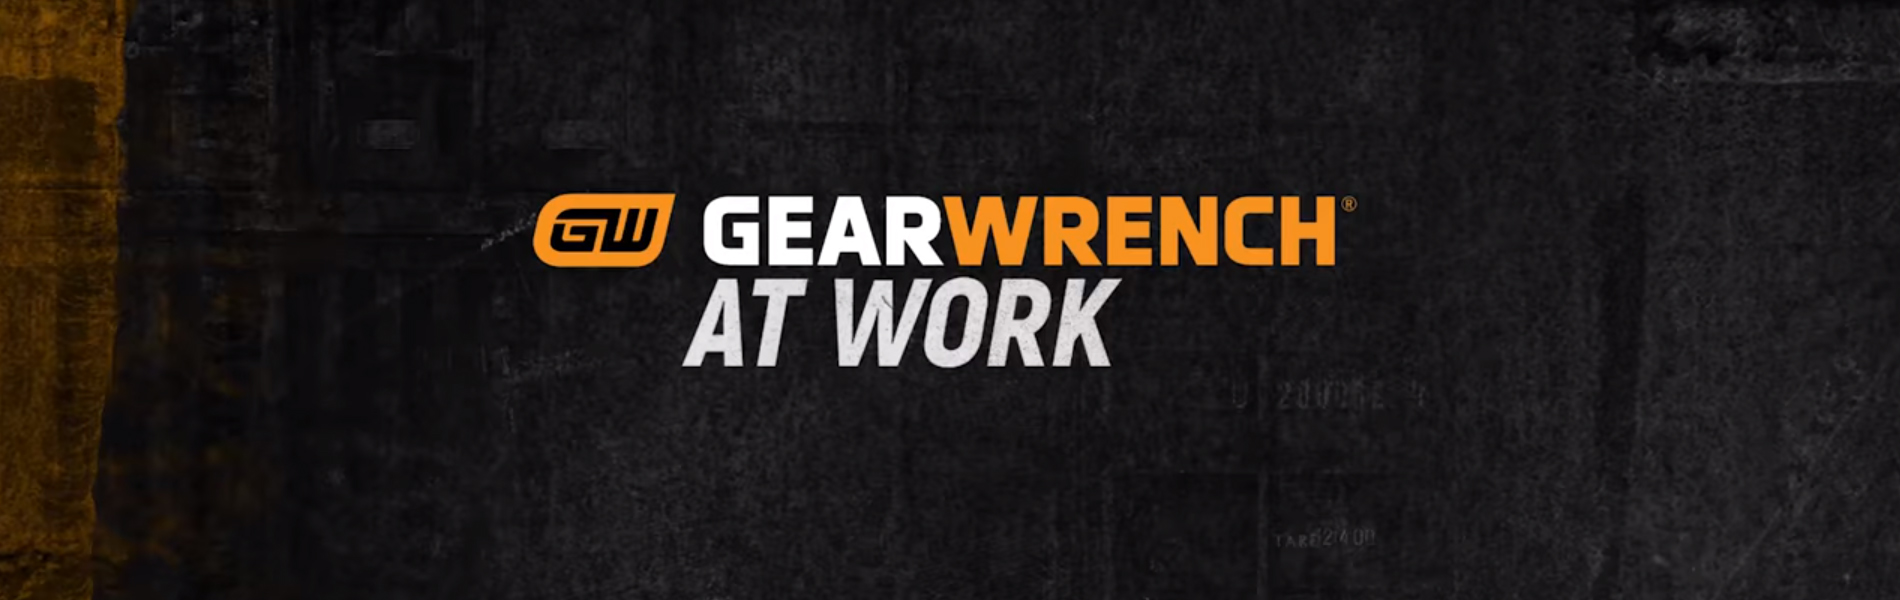 GEARWRENCH® AT WORK